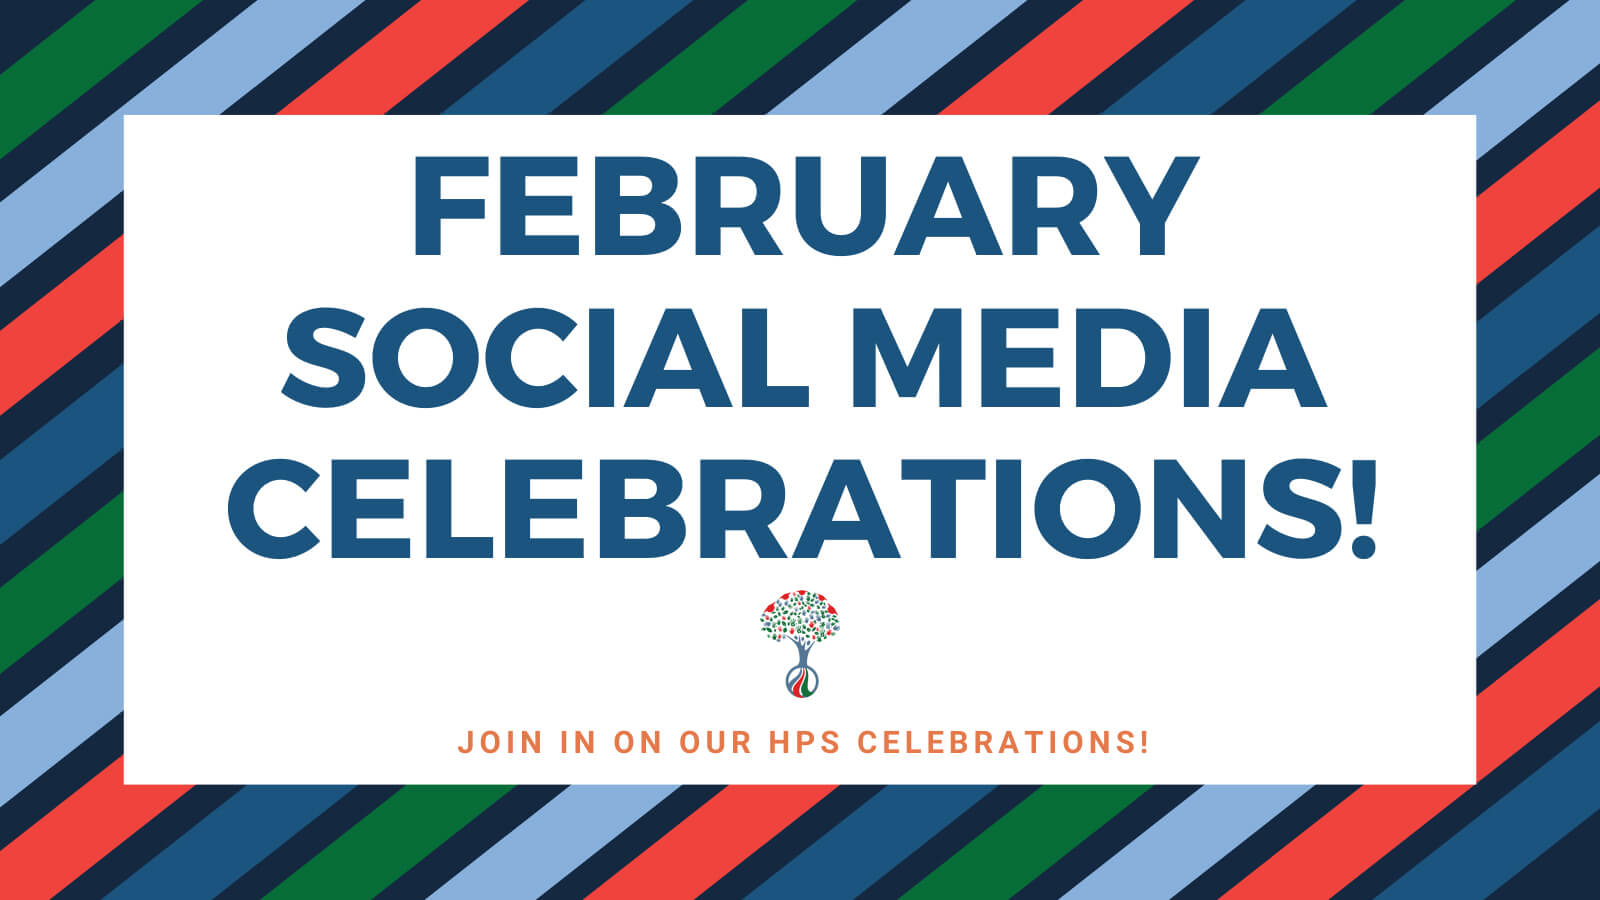 Join us in our February Social Media Celebrations!